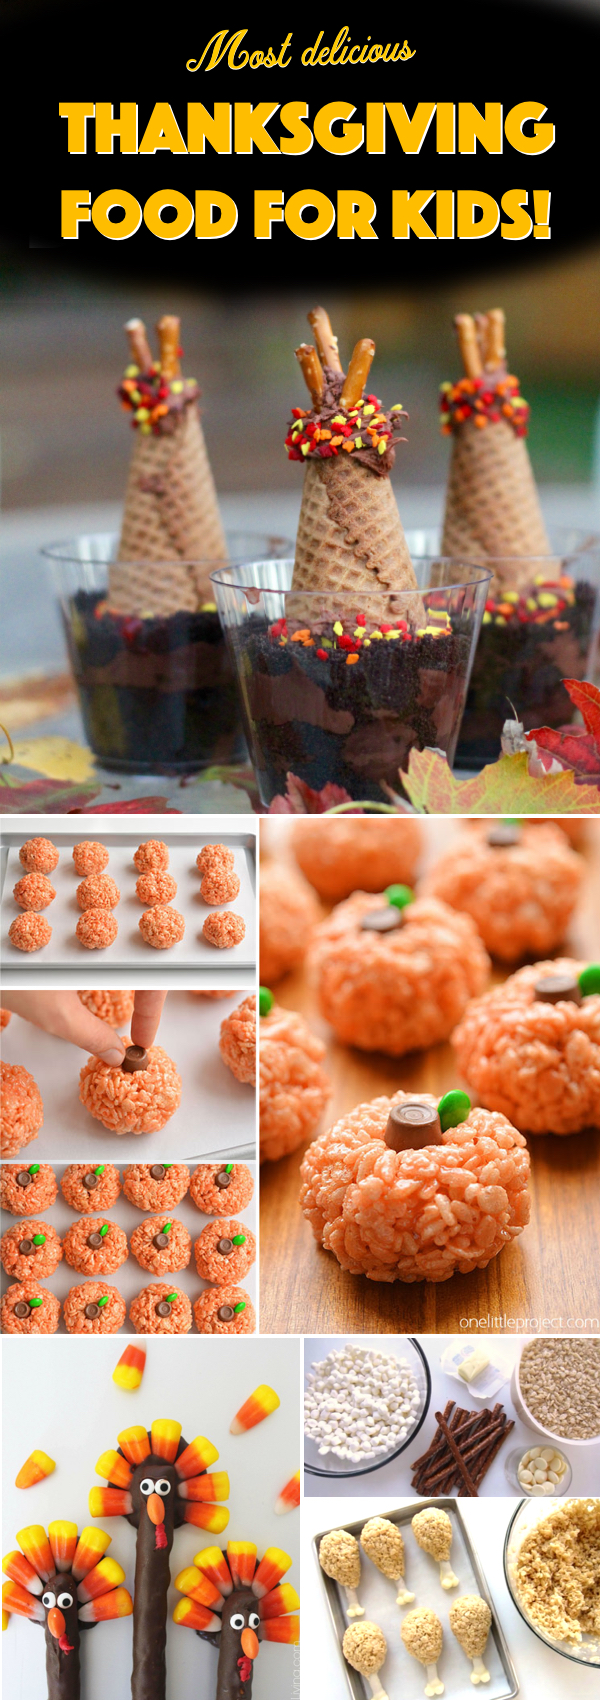 Adorable Recipes to Whip up The Most Delicious Thanksgiving Food for Kids